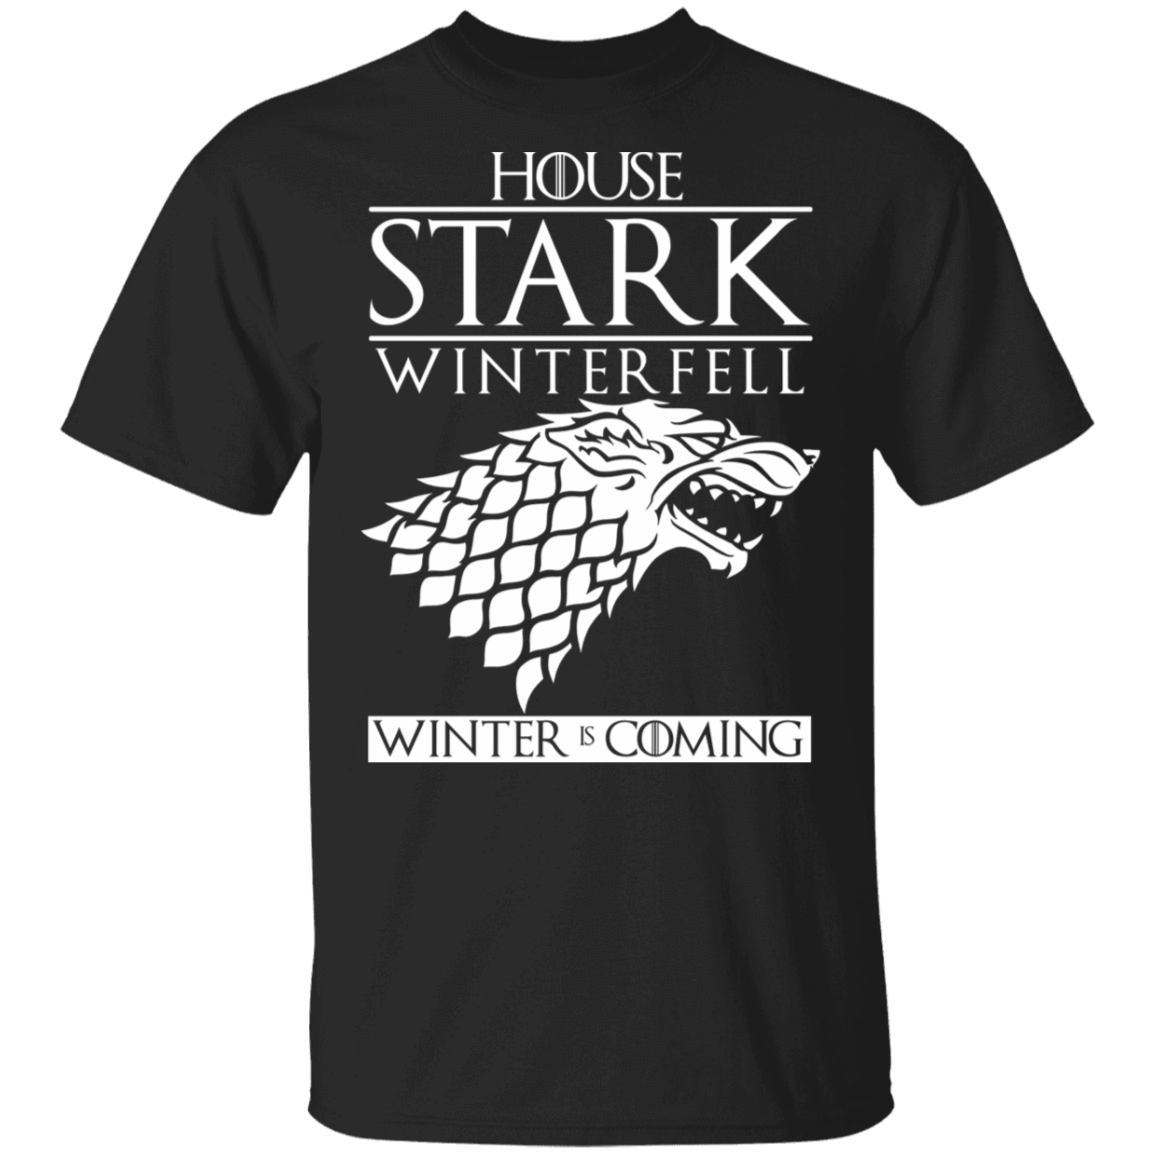 House Stark Winterfell Winter Is Coming T-Shirts, Hoodies 22-113-80162972-252 - Tee Ript